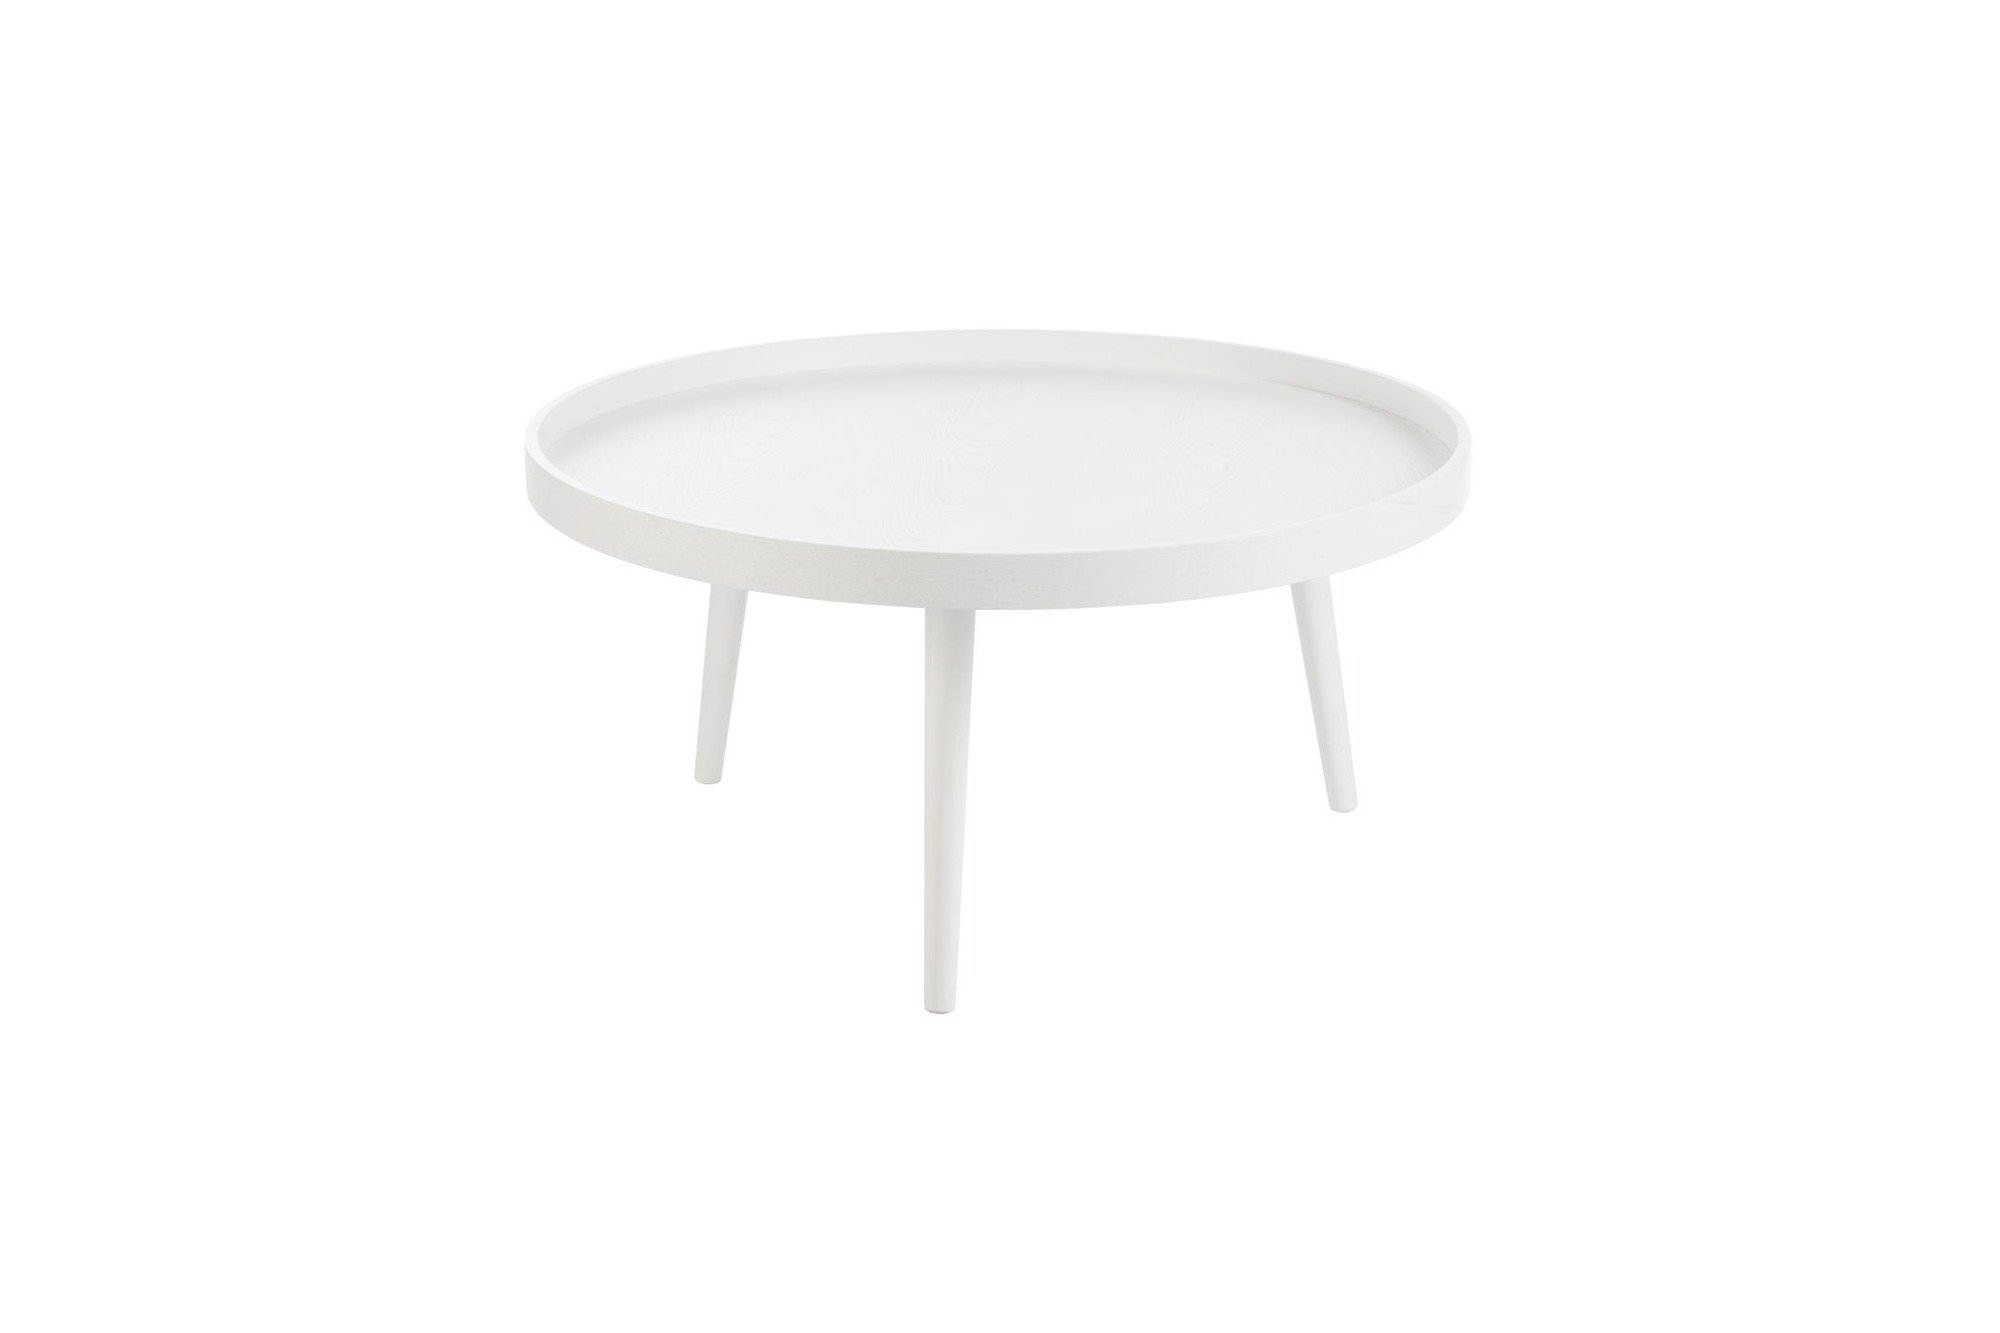 Table Ronde Bois Blanc Table Basse Ronde Moderne Blanche Hellin